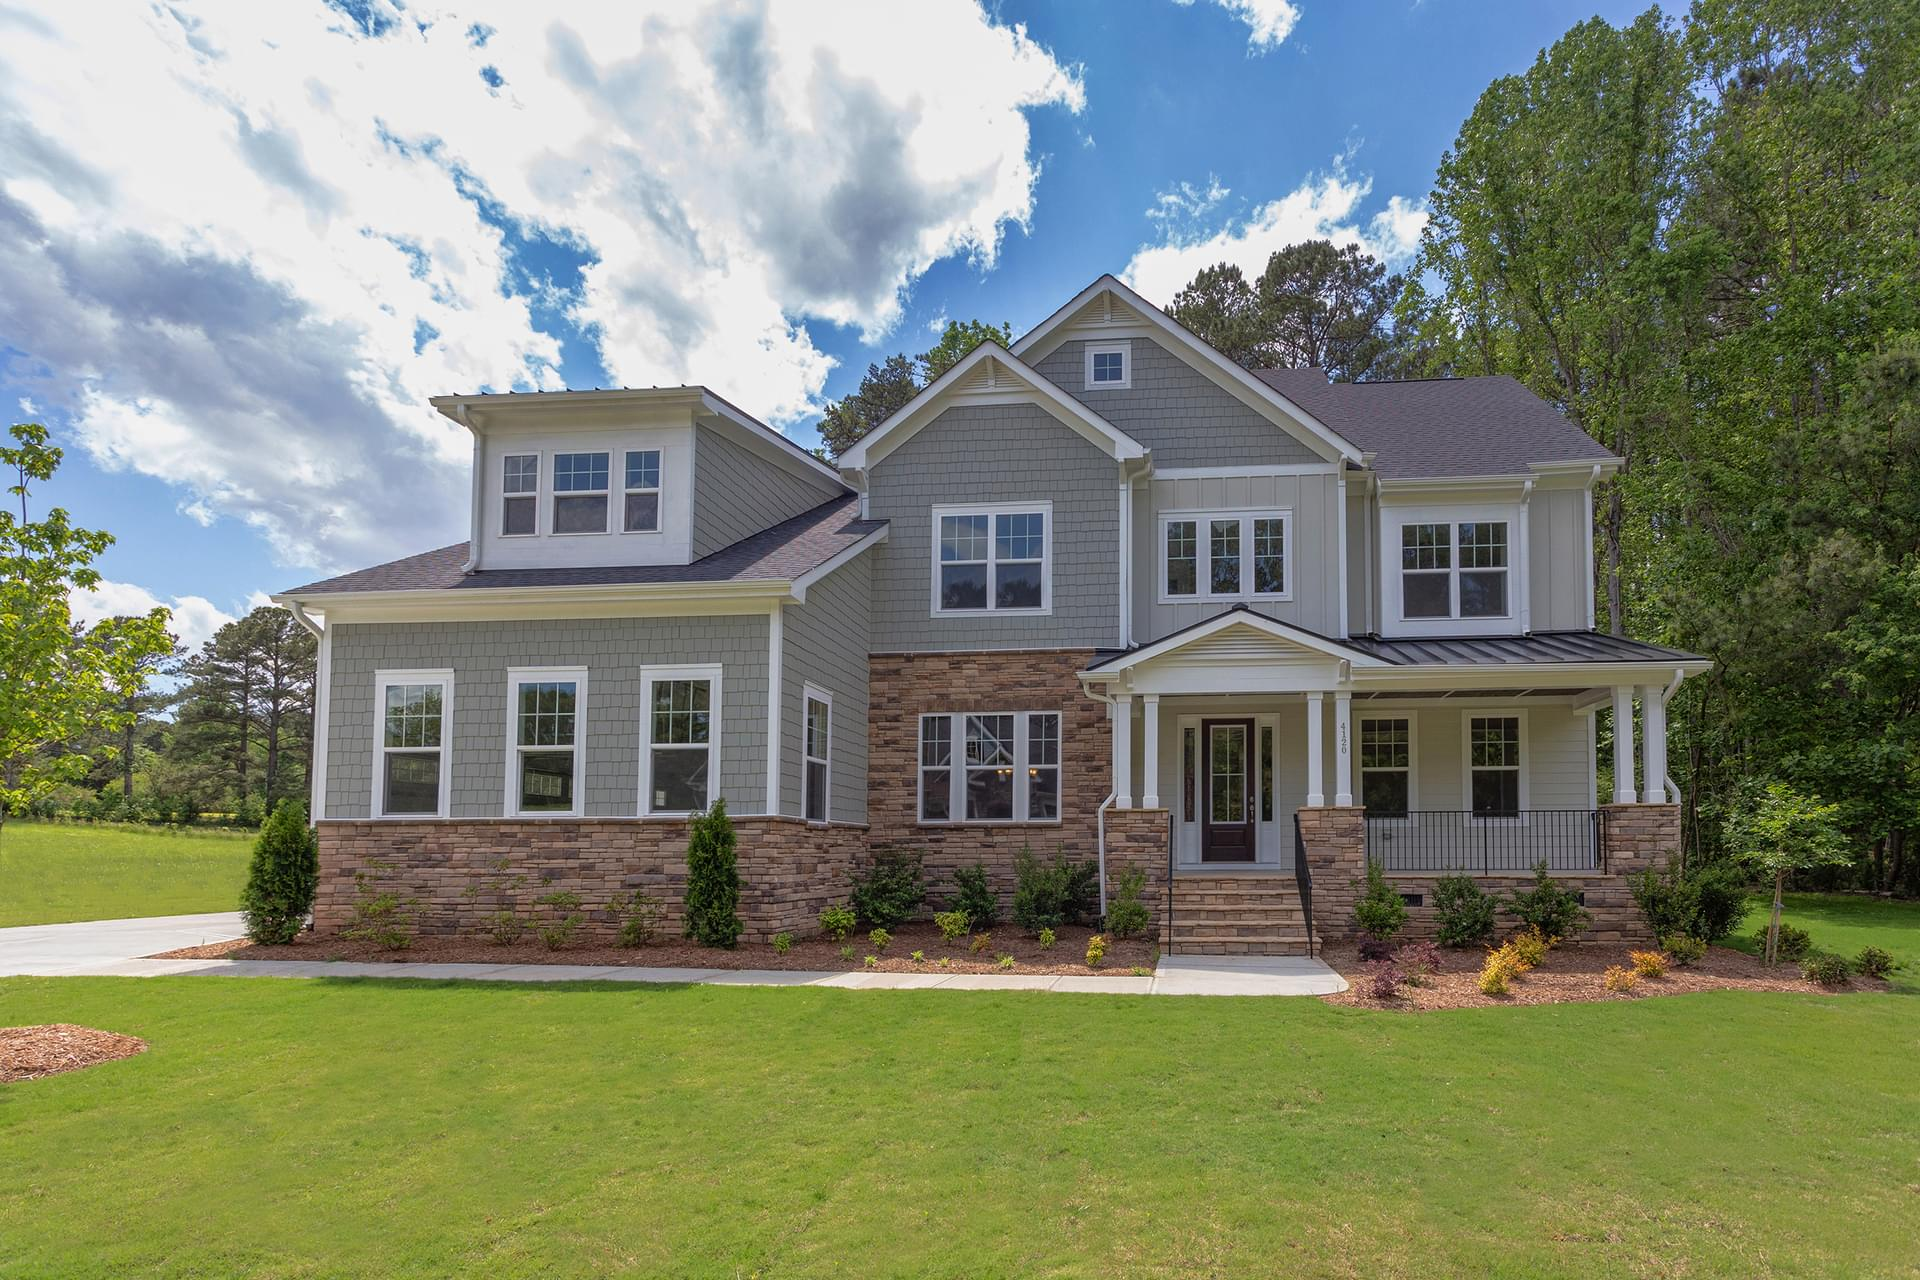 Avenel New Home in North Carolina